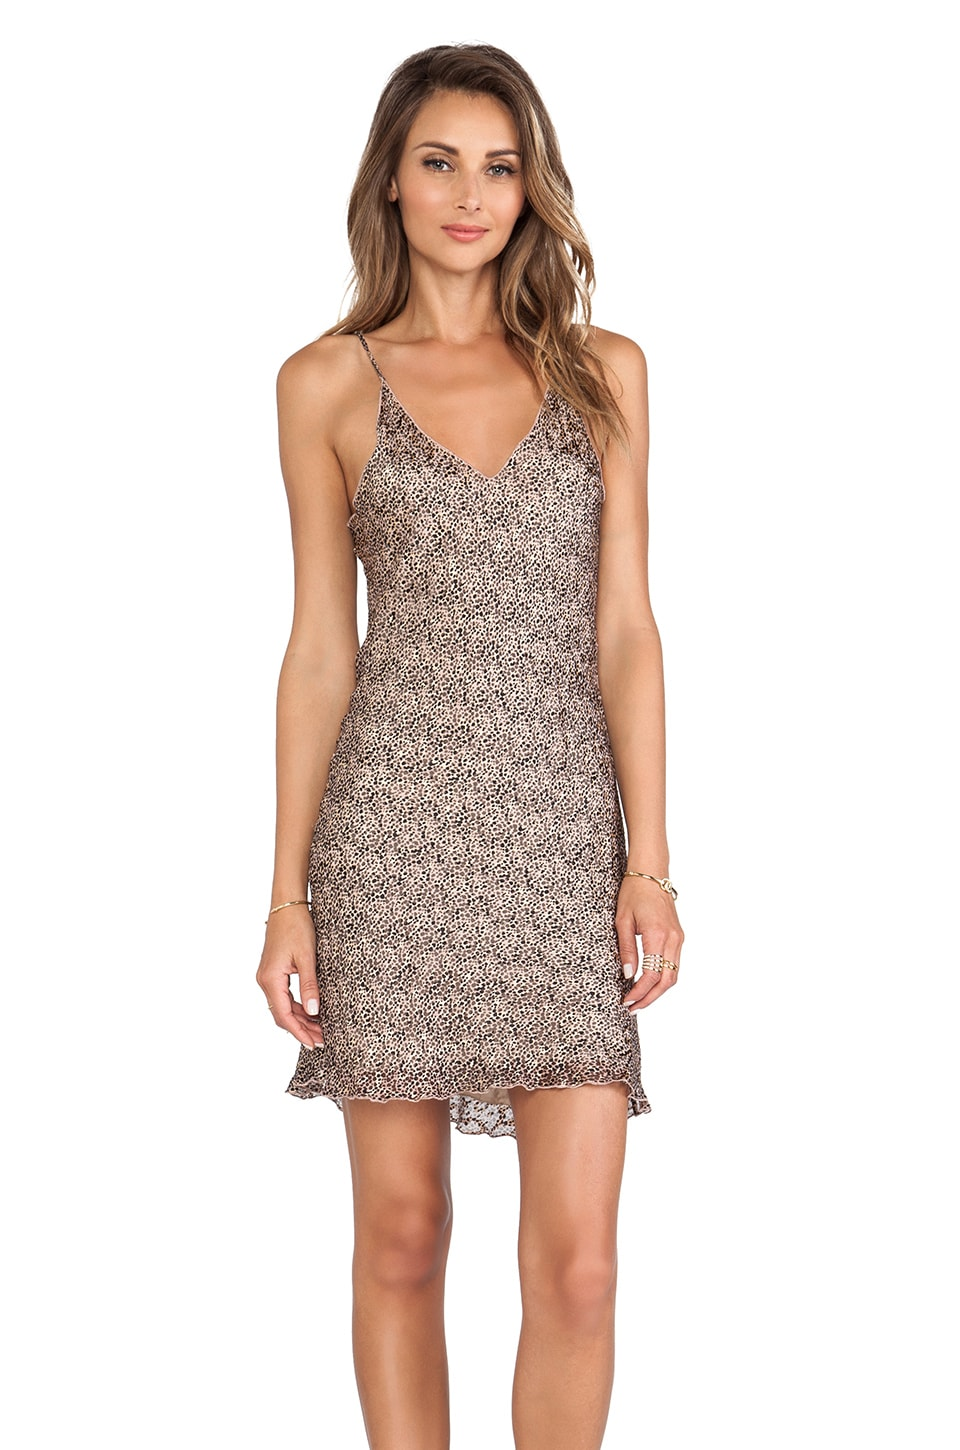 LoveShackFancy Baby Leopard Burnout Slip Mini Dress in Beige Multi